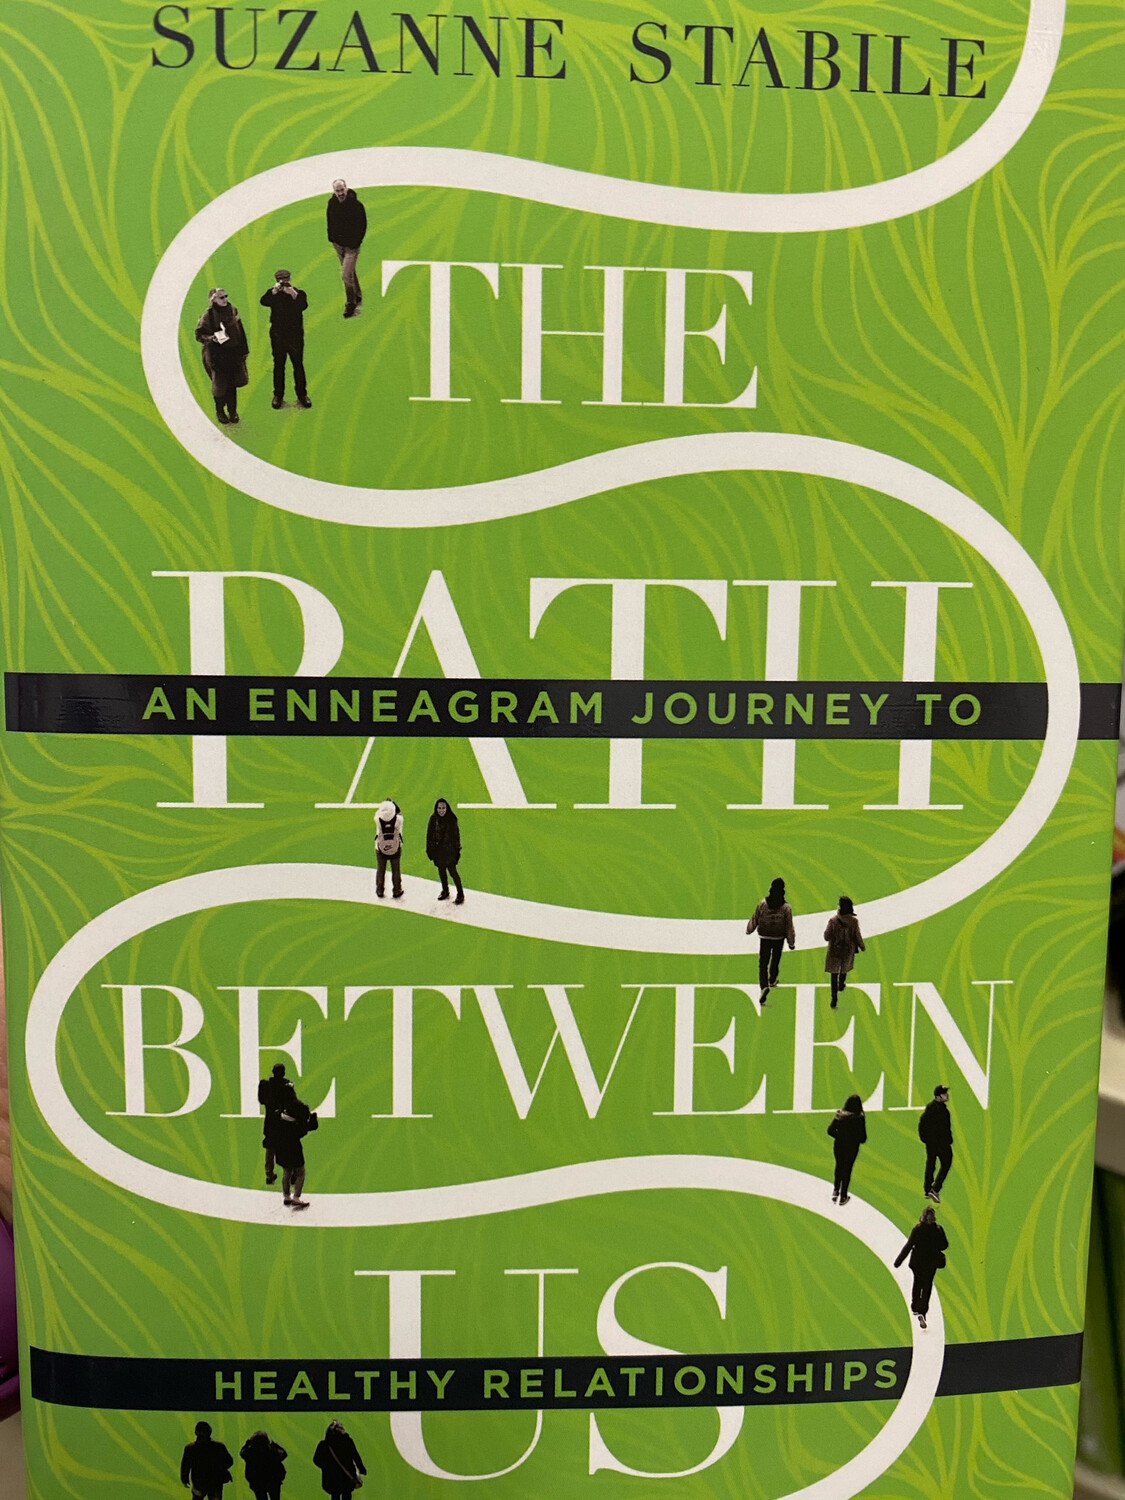 STABILE, An Enneagram Journey To The Path Between Us